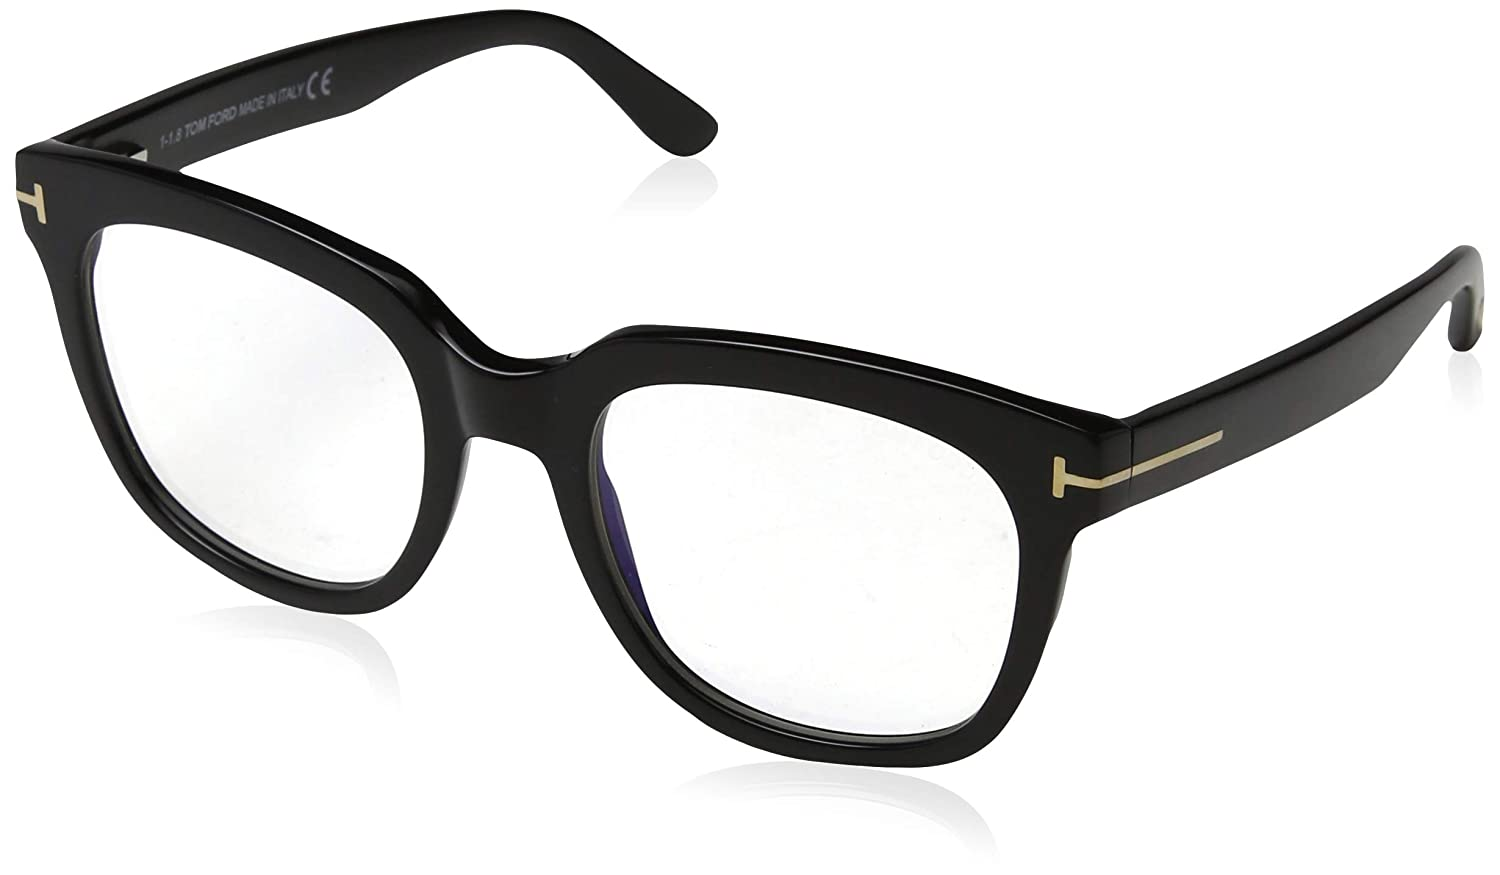 cc093cad470 Tom ford blue block black women eyewear frame at amazon men clothing store  jpg 1500x875 Tom